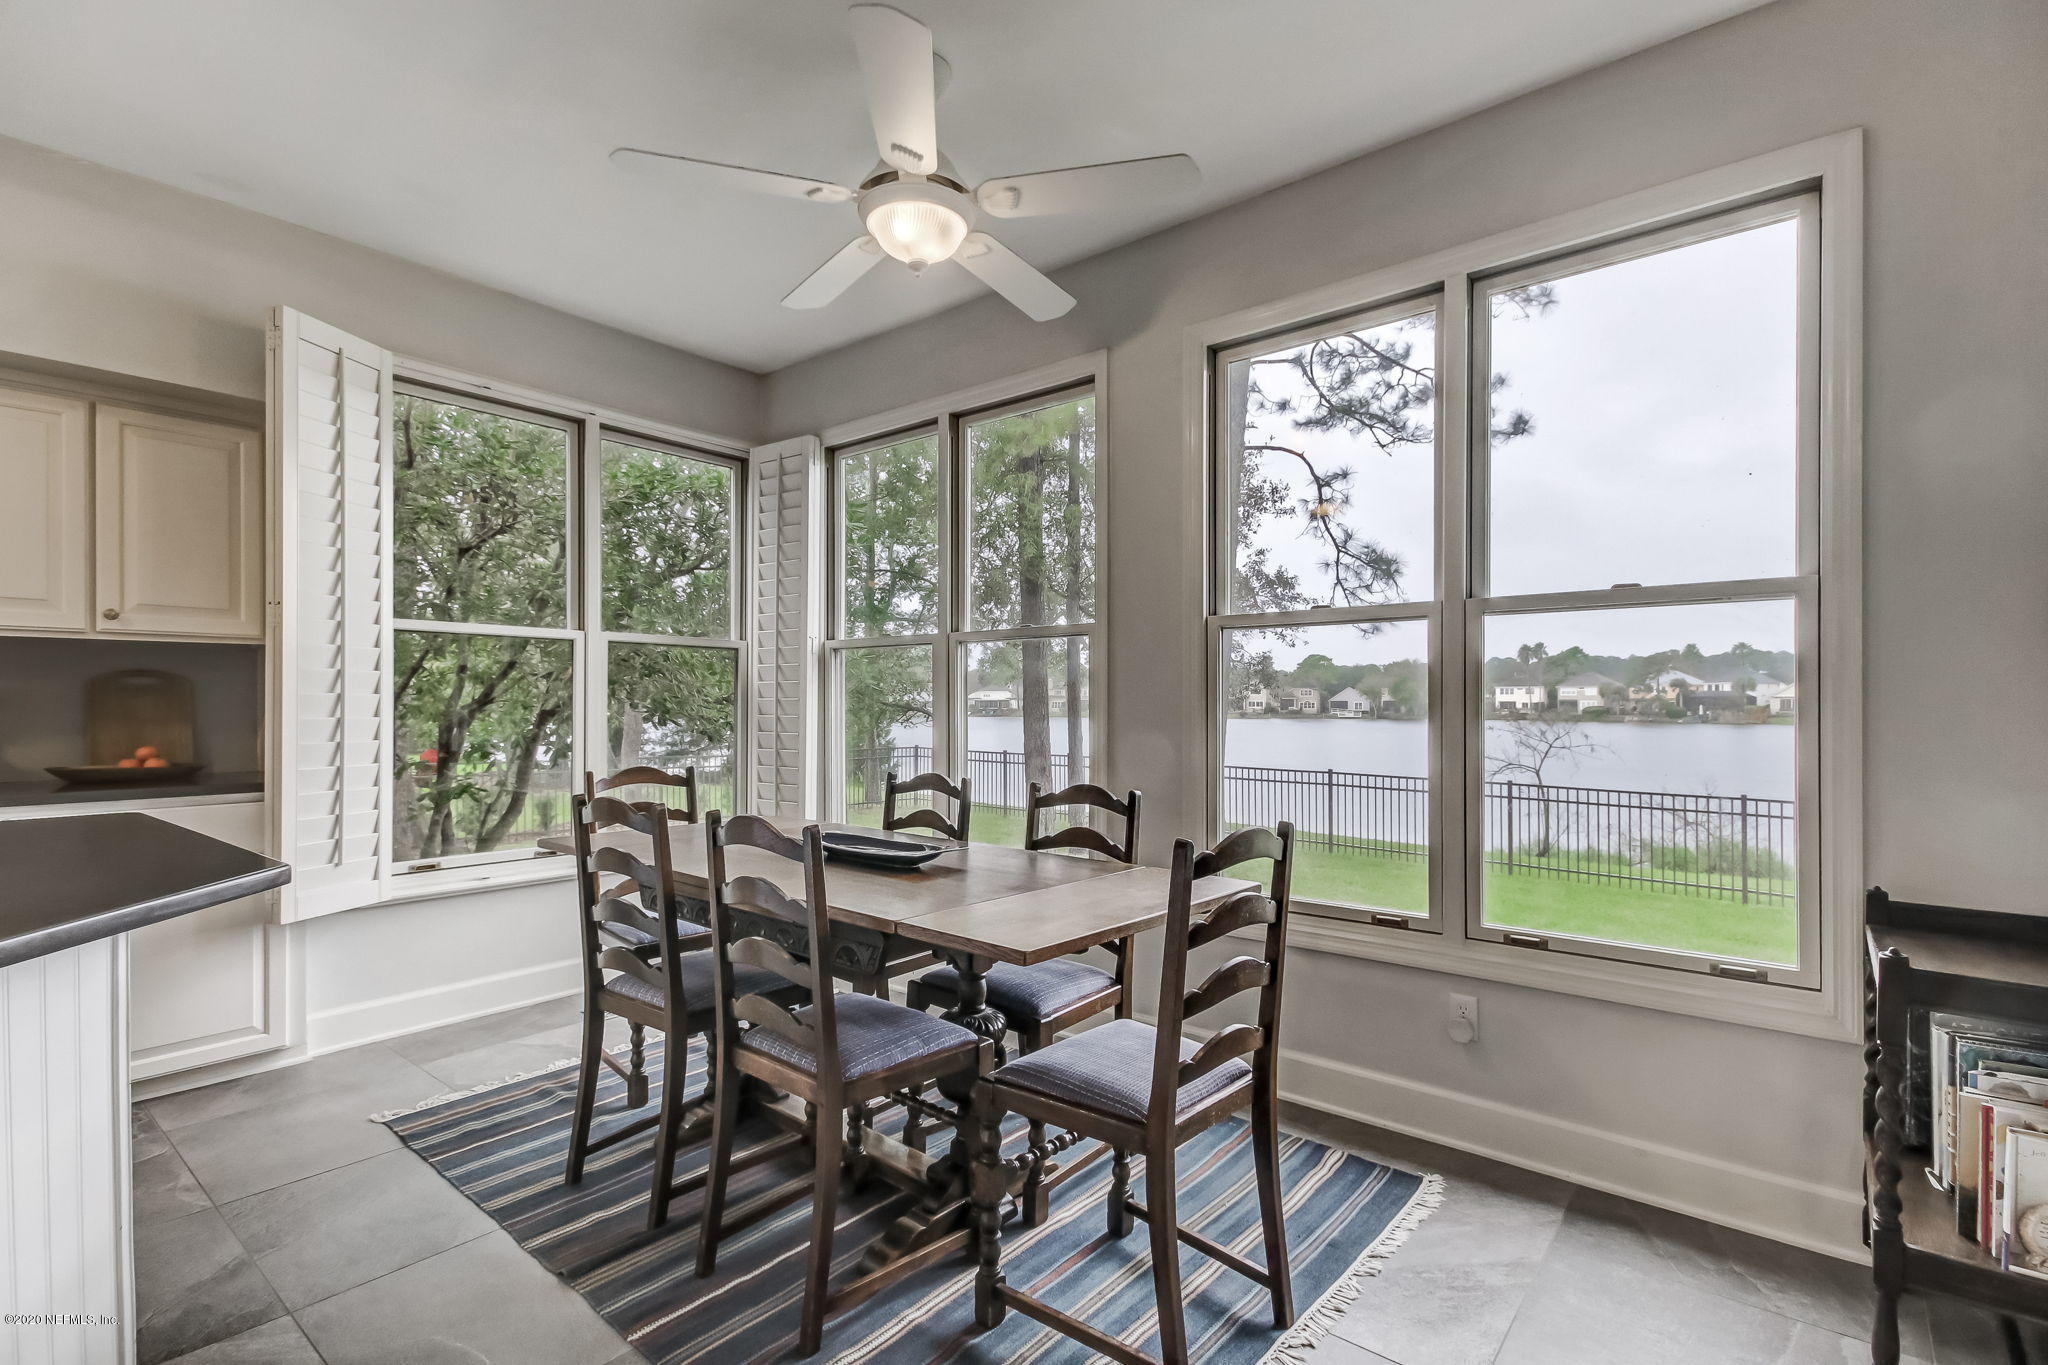 97149 WOODSTORK, FERNANDINA BEACH, FLORIDA 32034, 3 Bedrooms Bedrooms, ,2 BathroomsBathrooms,Residential,For sale,WOODSTORK,1082475